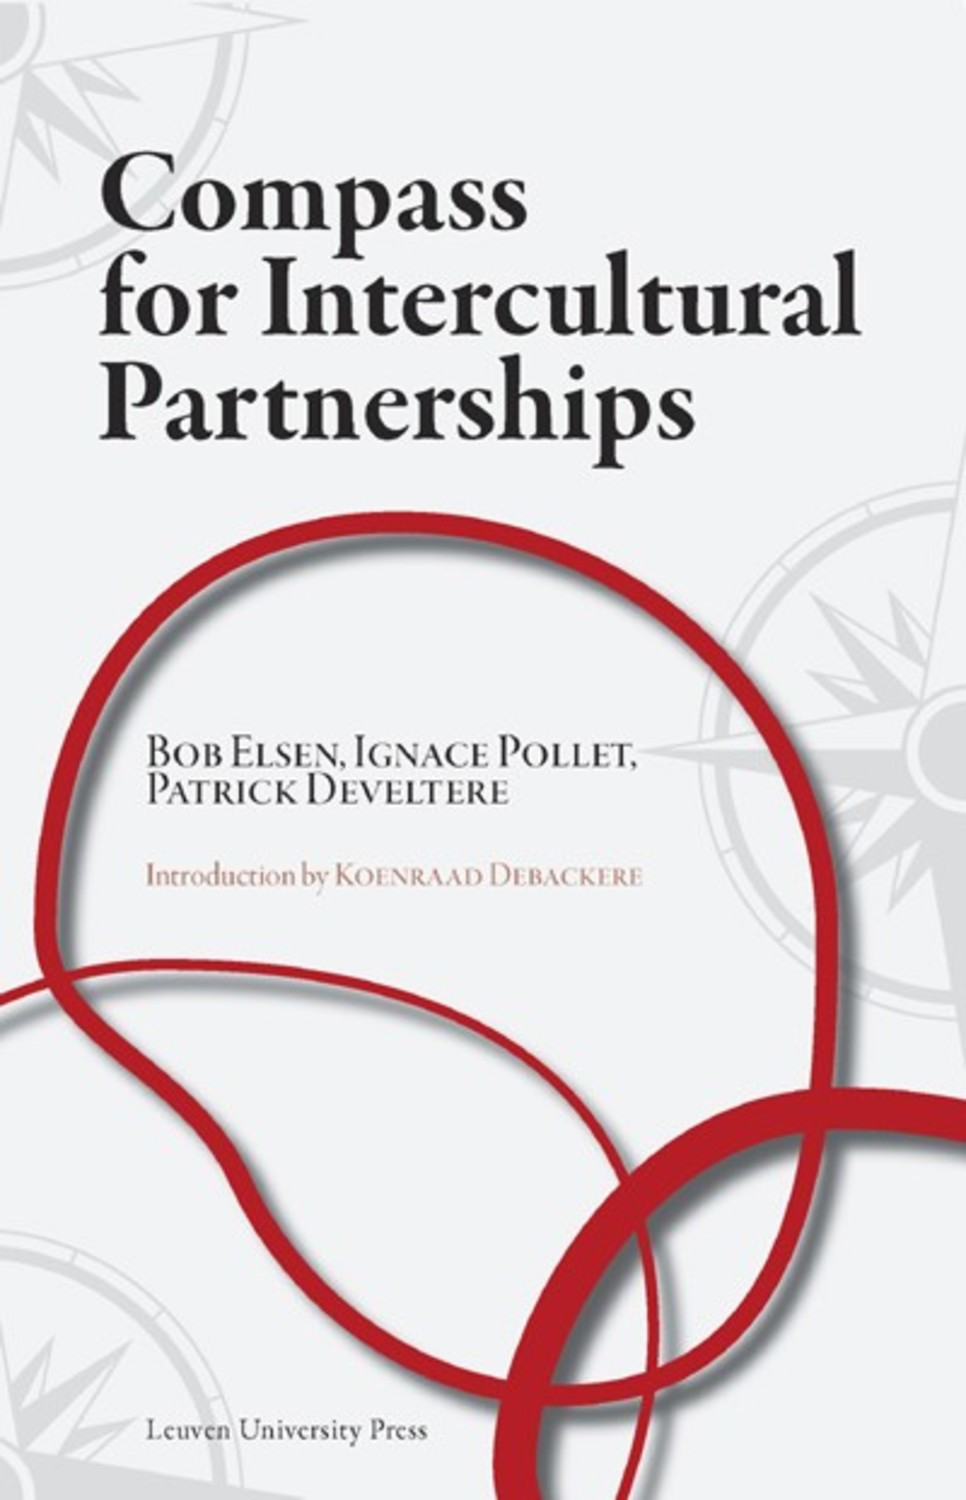 Compass for Intercultural Partnerships